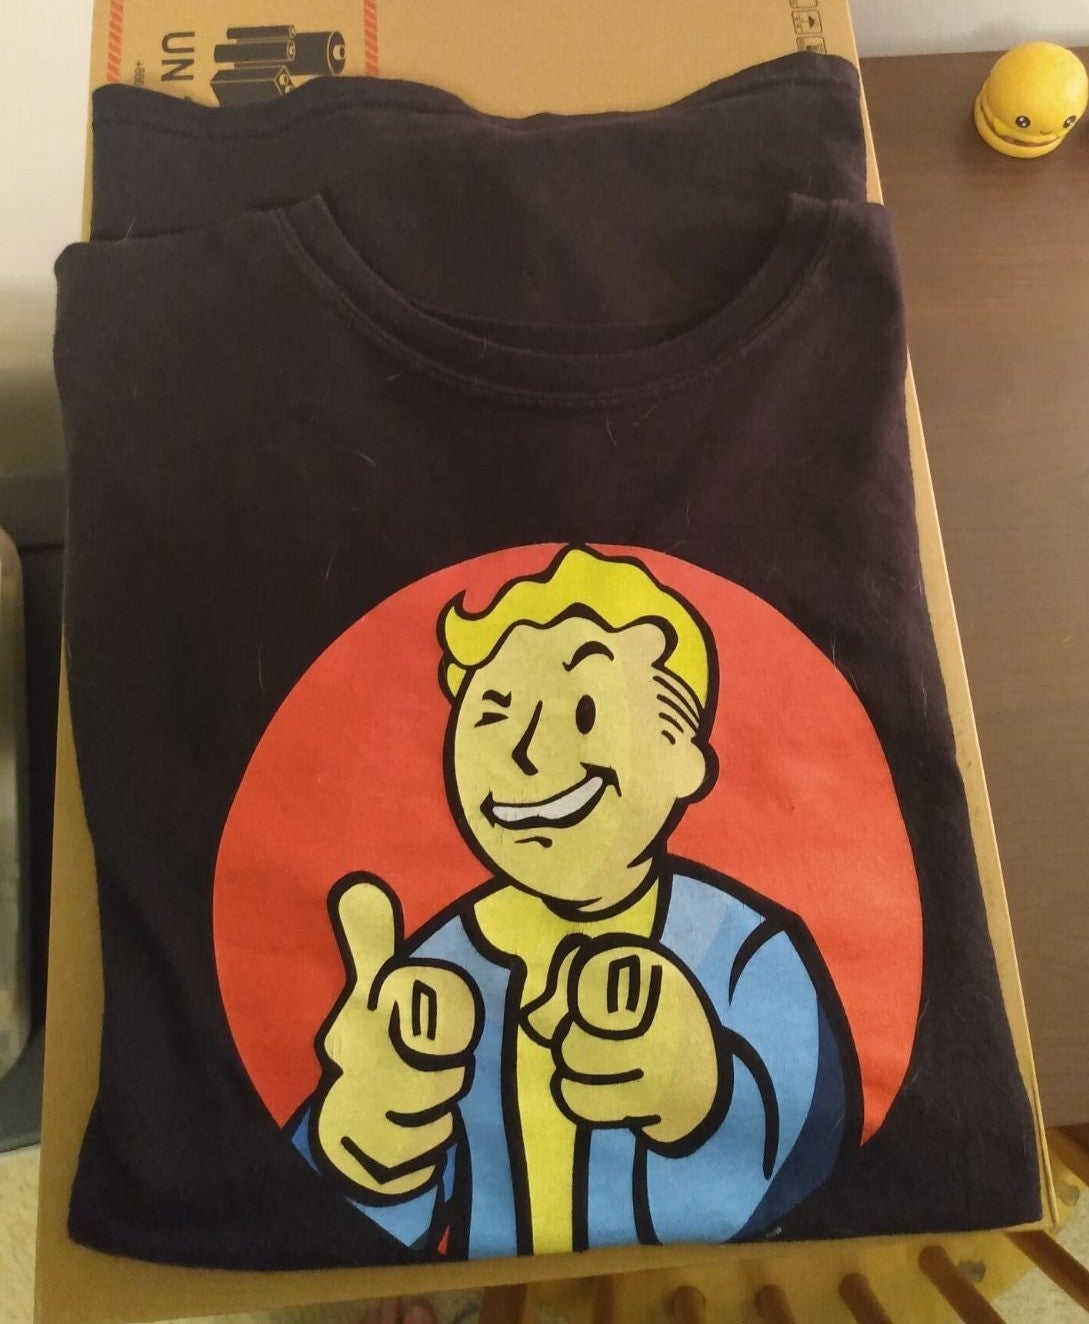 Fallout short sleeve t-shirt